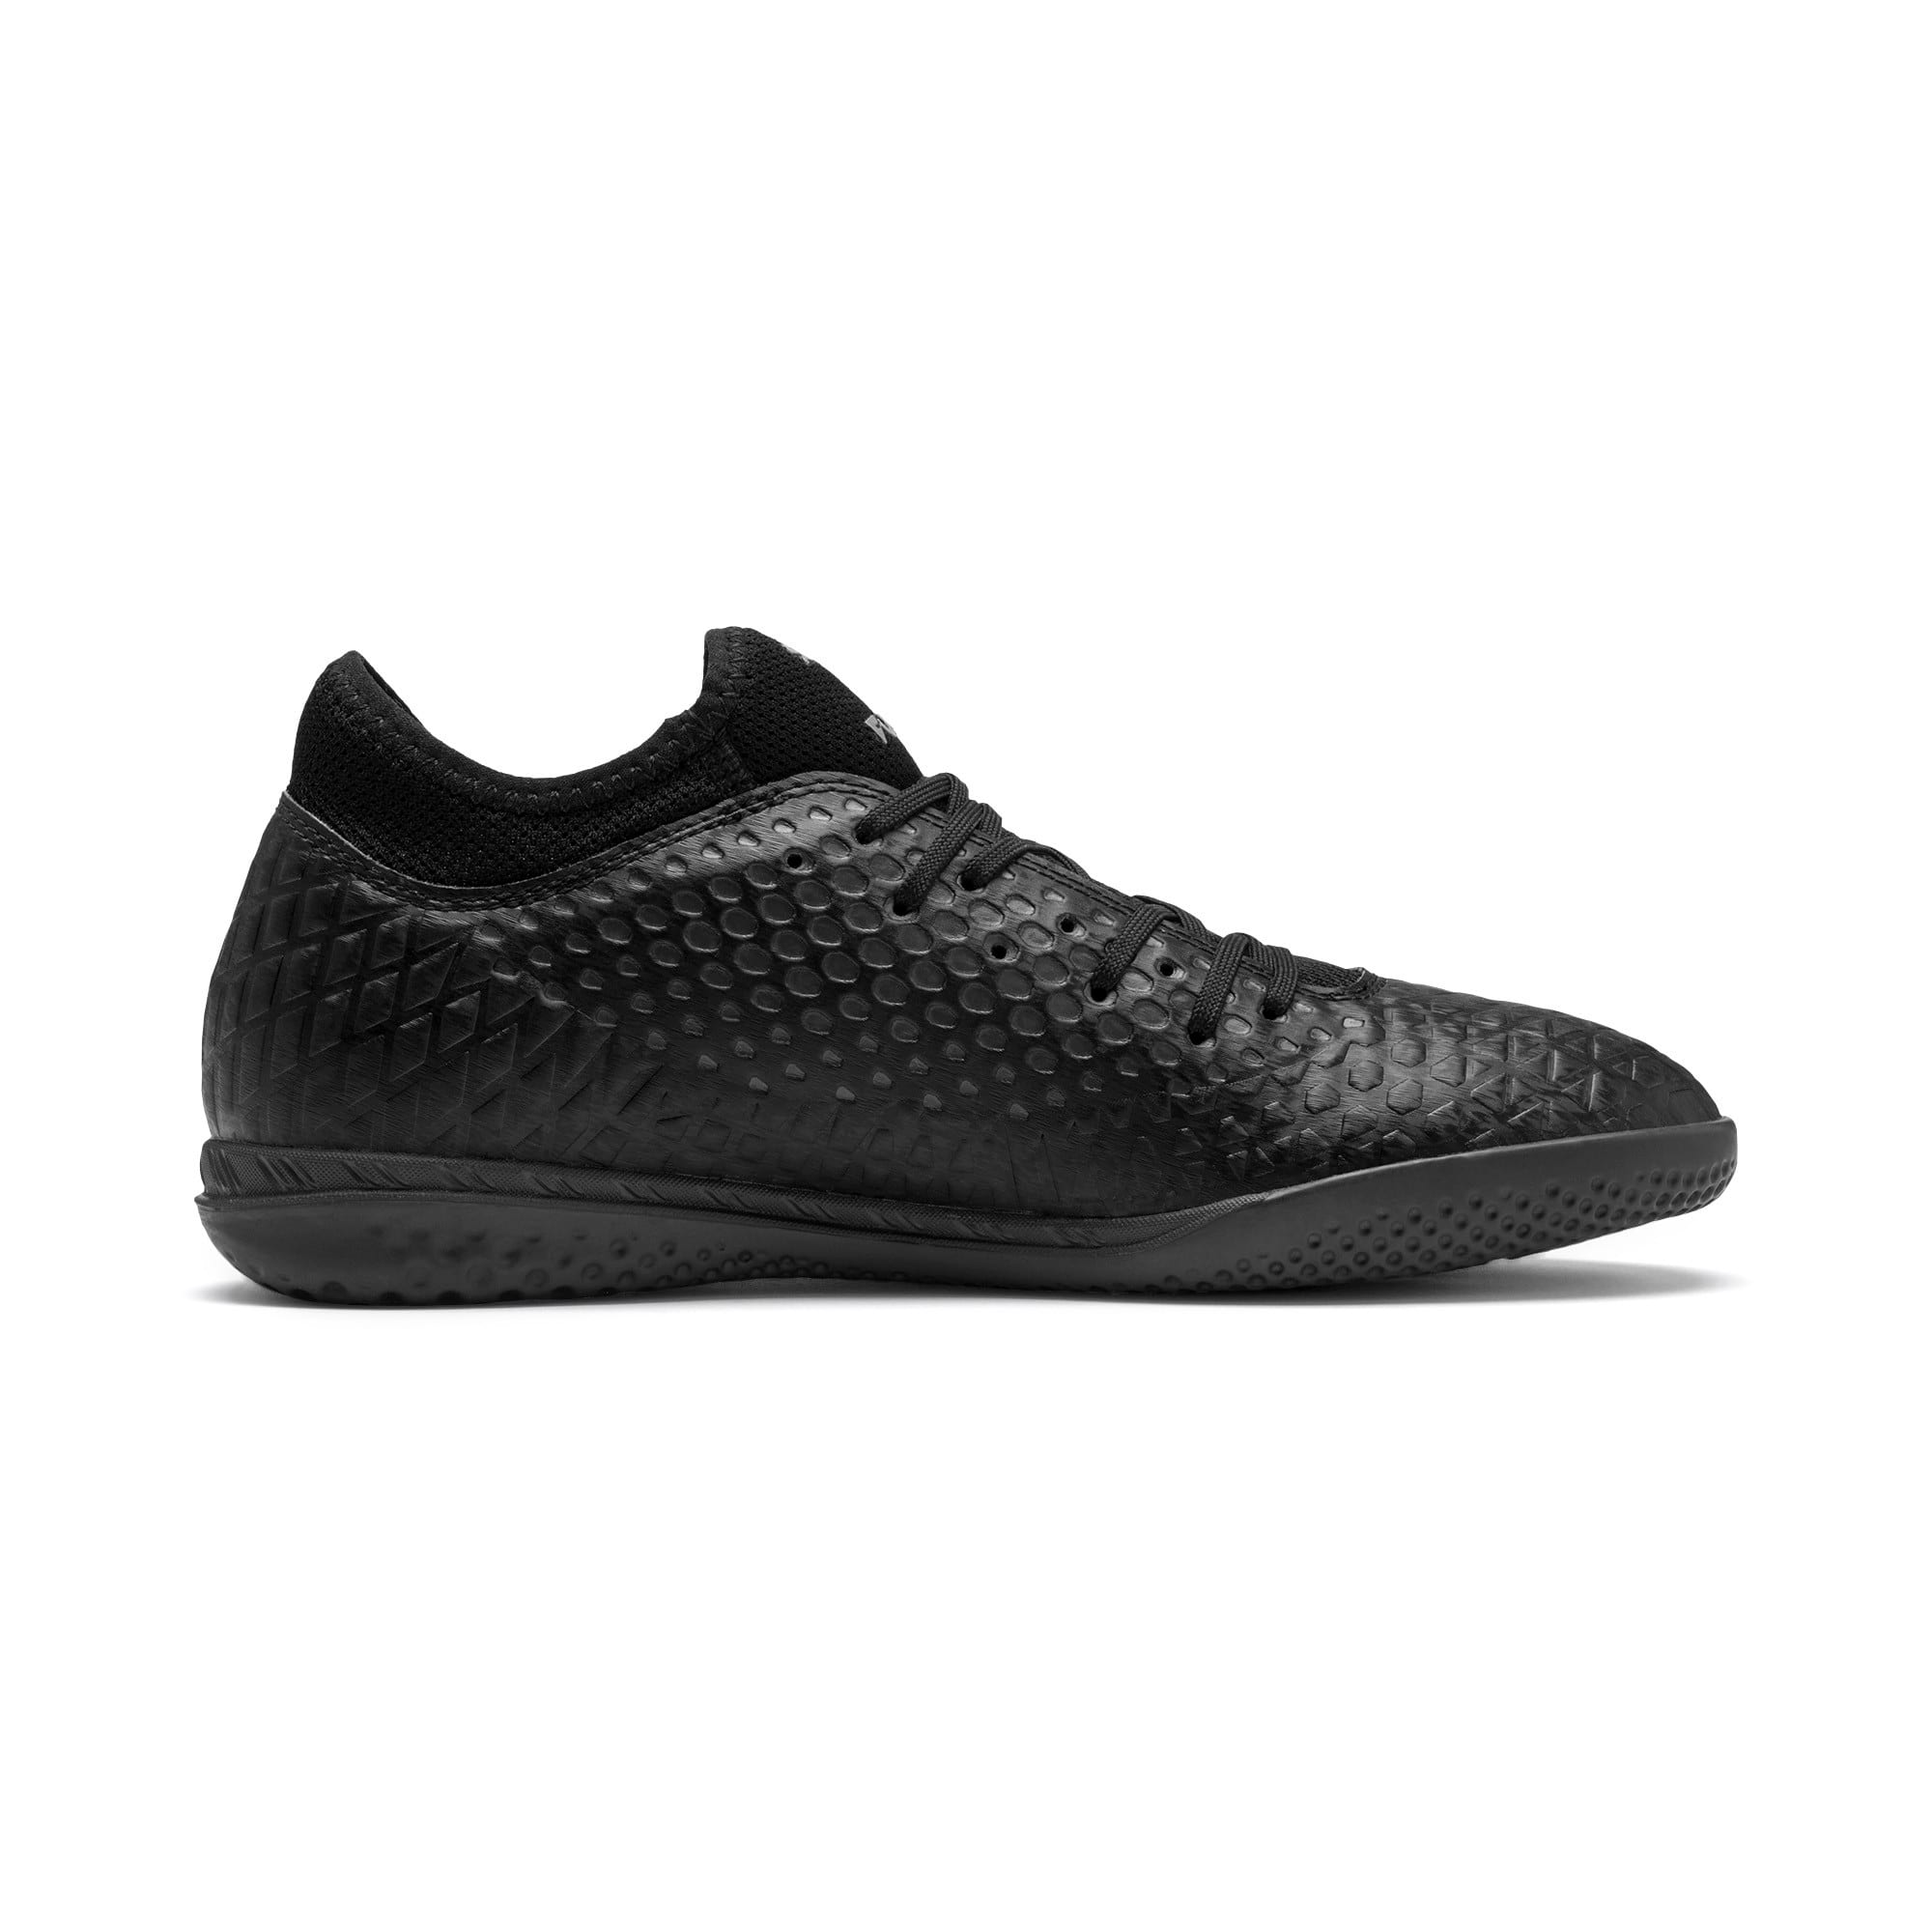 Thumbnail 6 of FUTURE 4.4 IT Men's Football Boots, Black-Black-Puma Aged Silver, medium